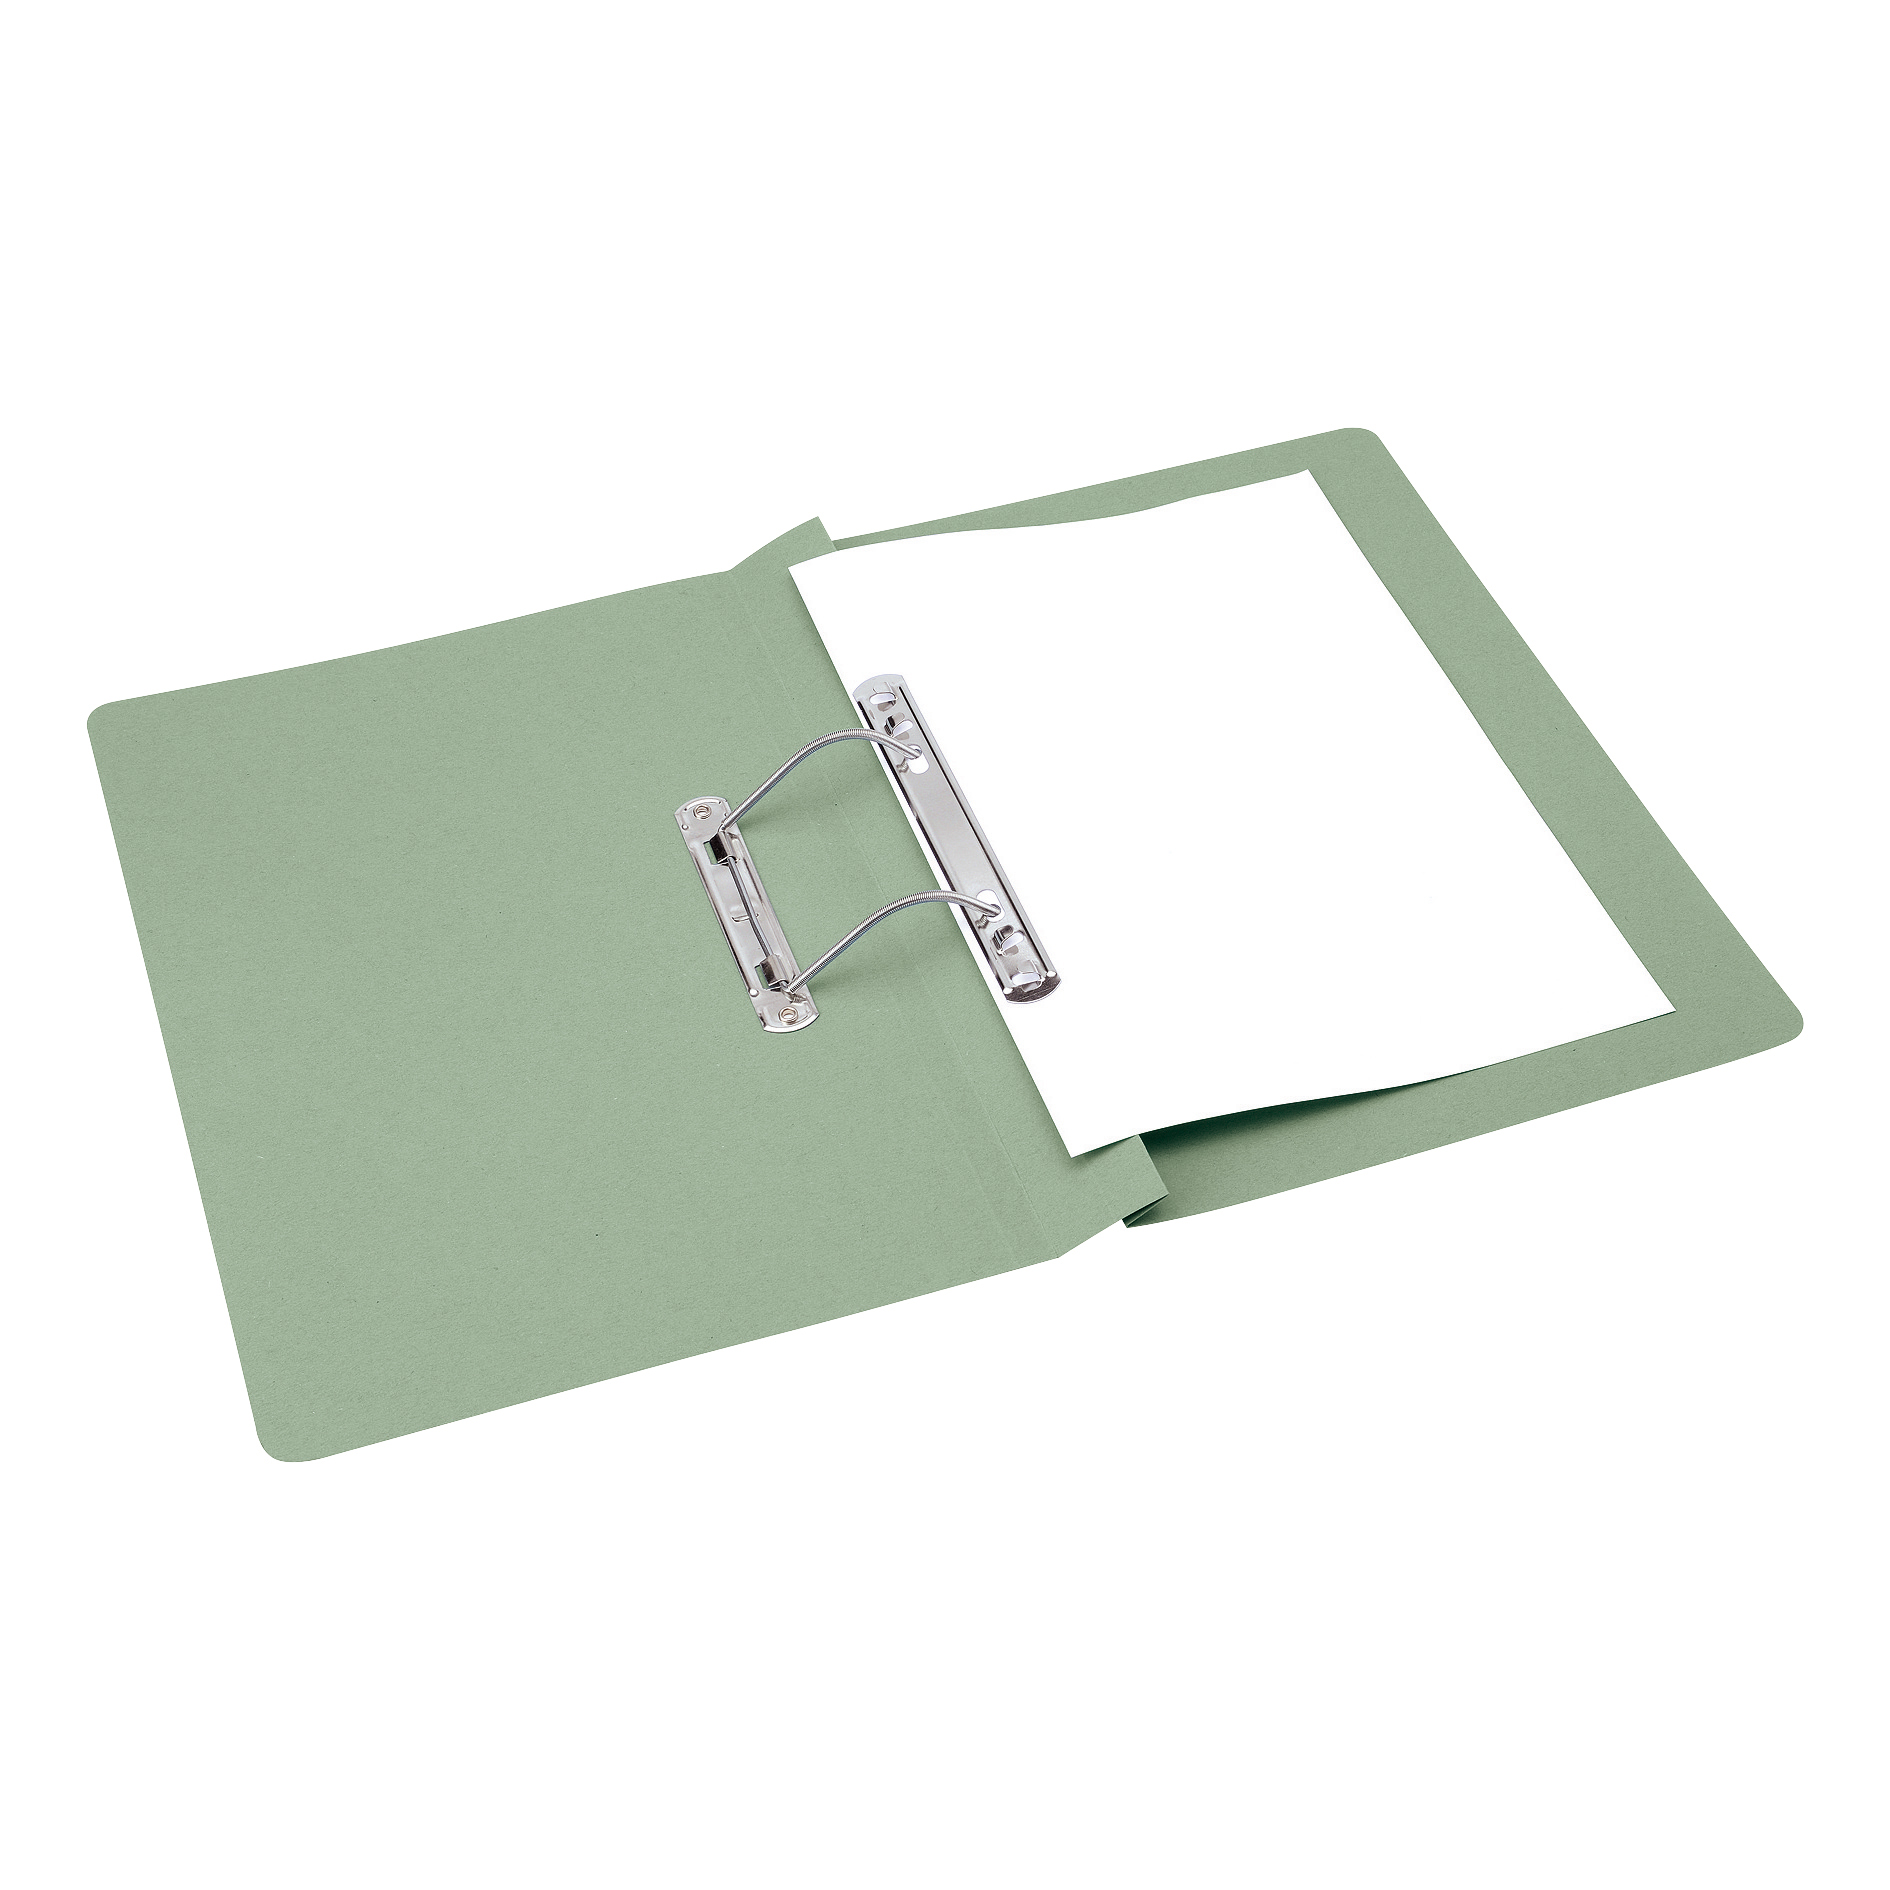 Spring Files 5 Star Office Transfer Spring File Mediumweight 285gsm Capacity 38mm Foolscap Green Pack 50